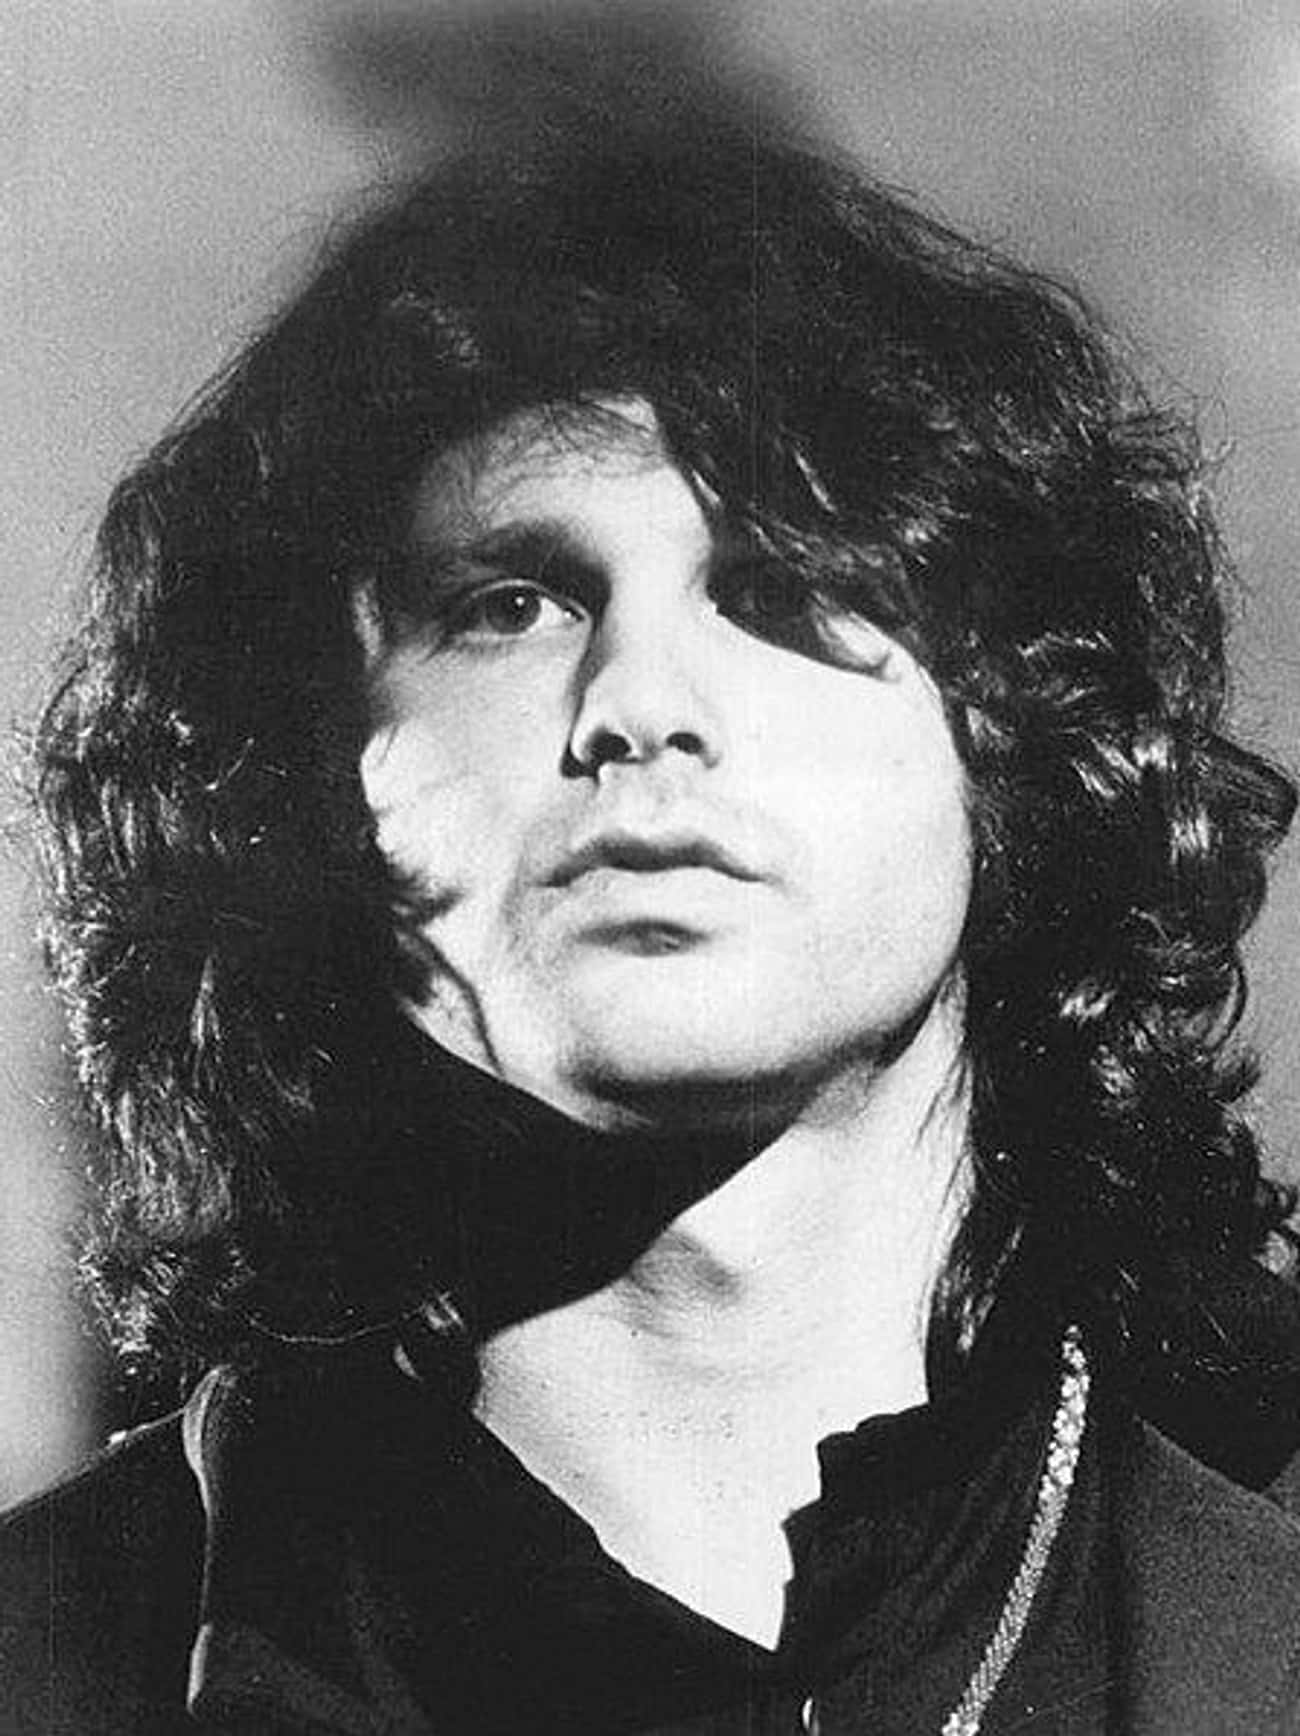 Morrison Had A Secret Code To  is listed (or ranked) 2 on the list Wild Jim Morrison Stories, From Riots To Arrests